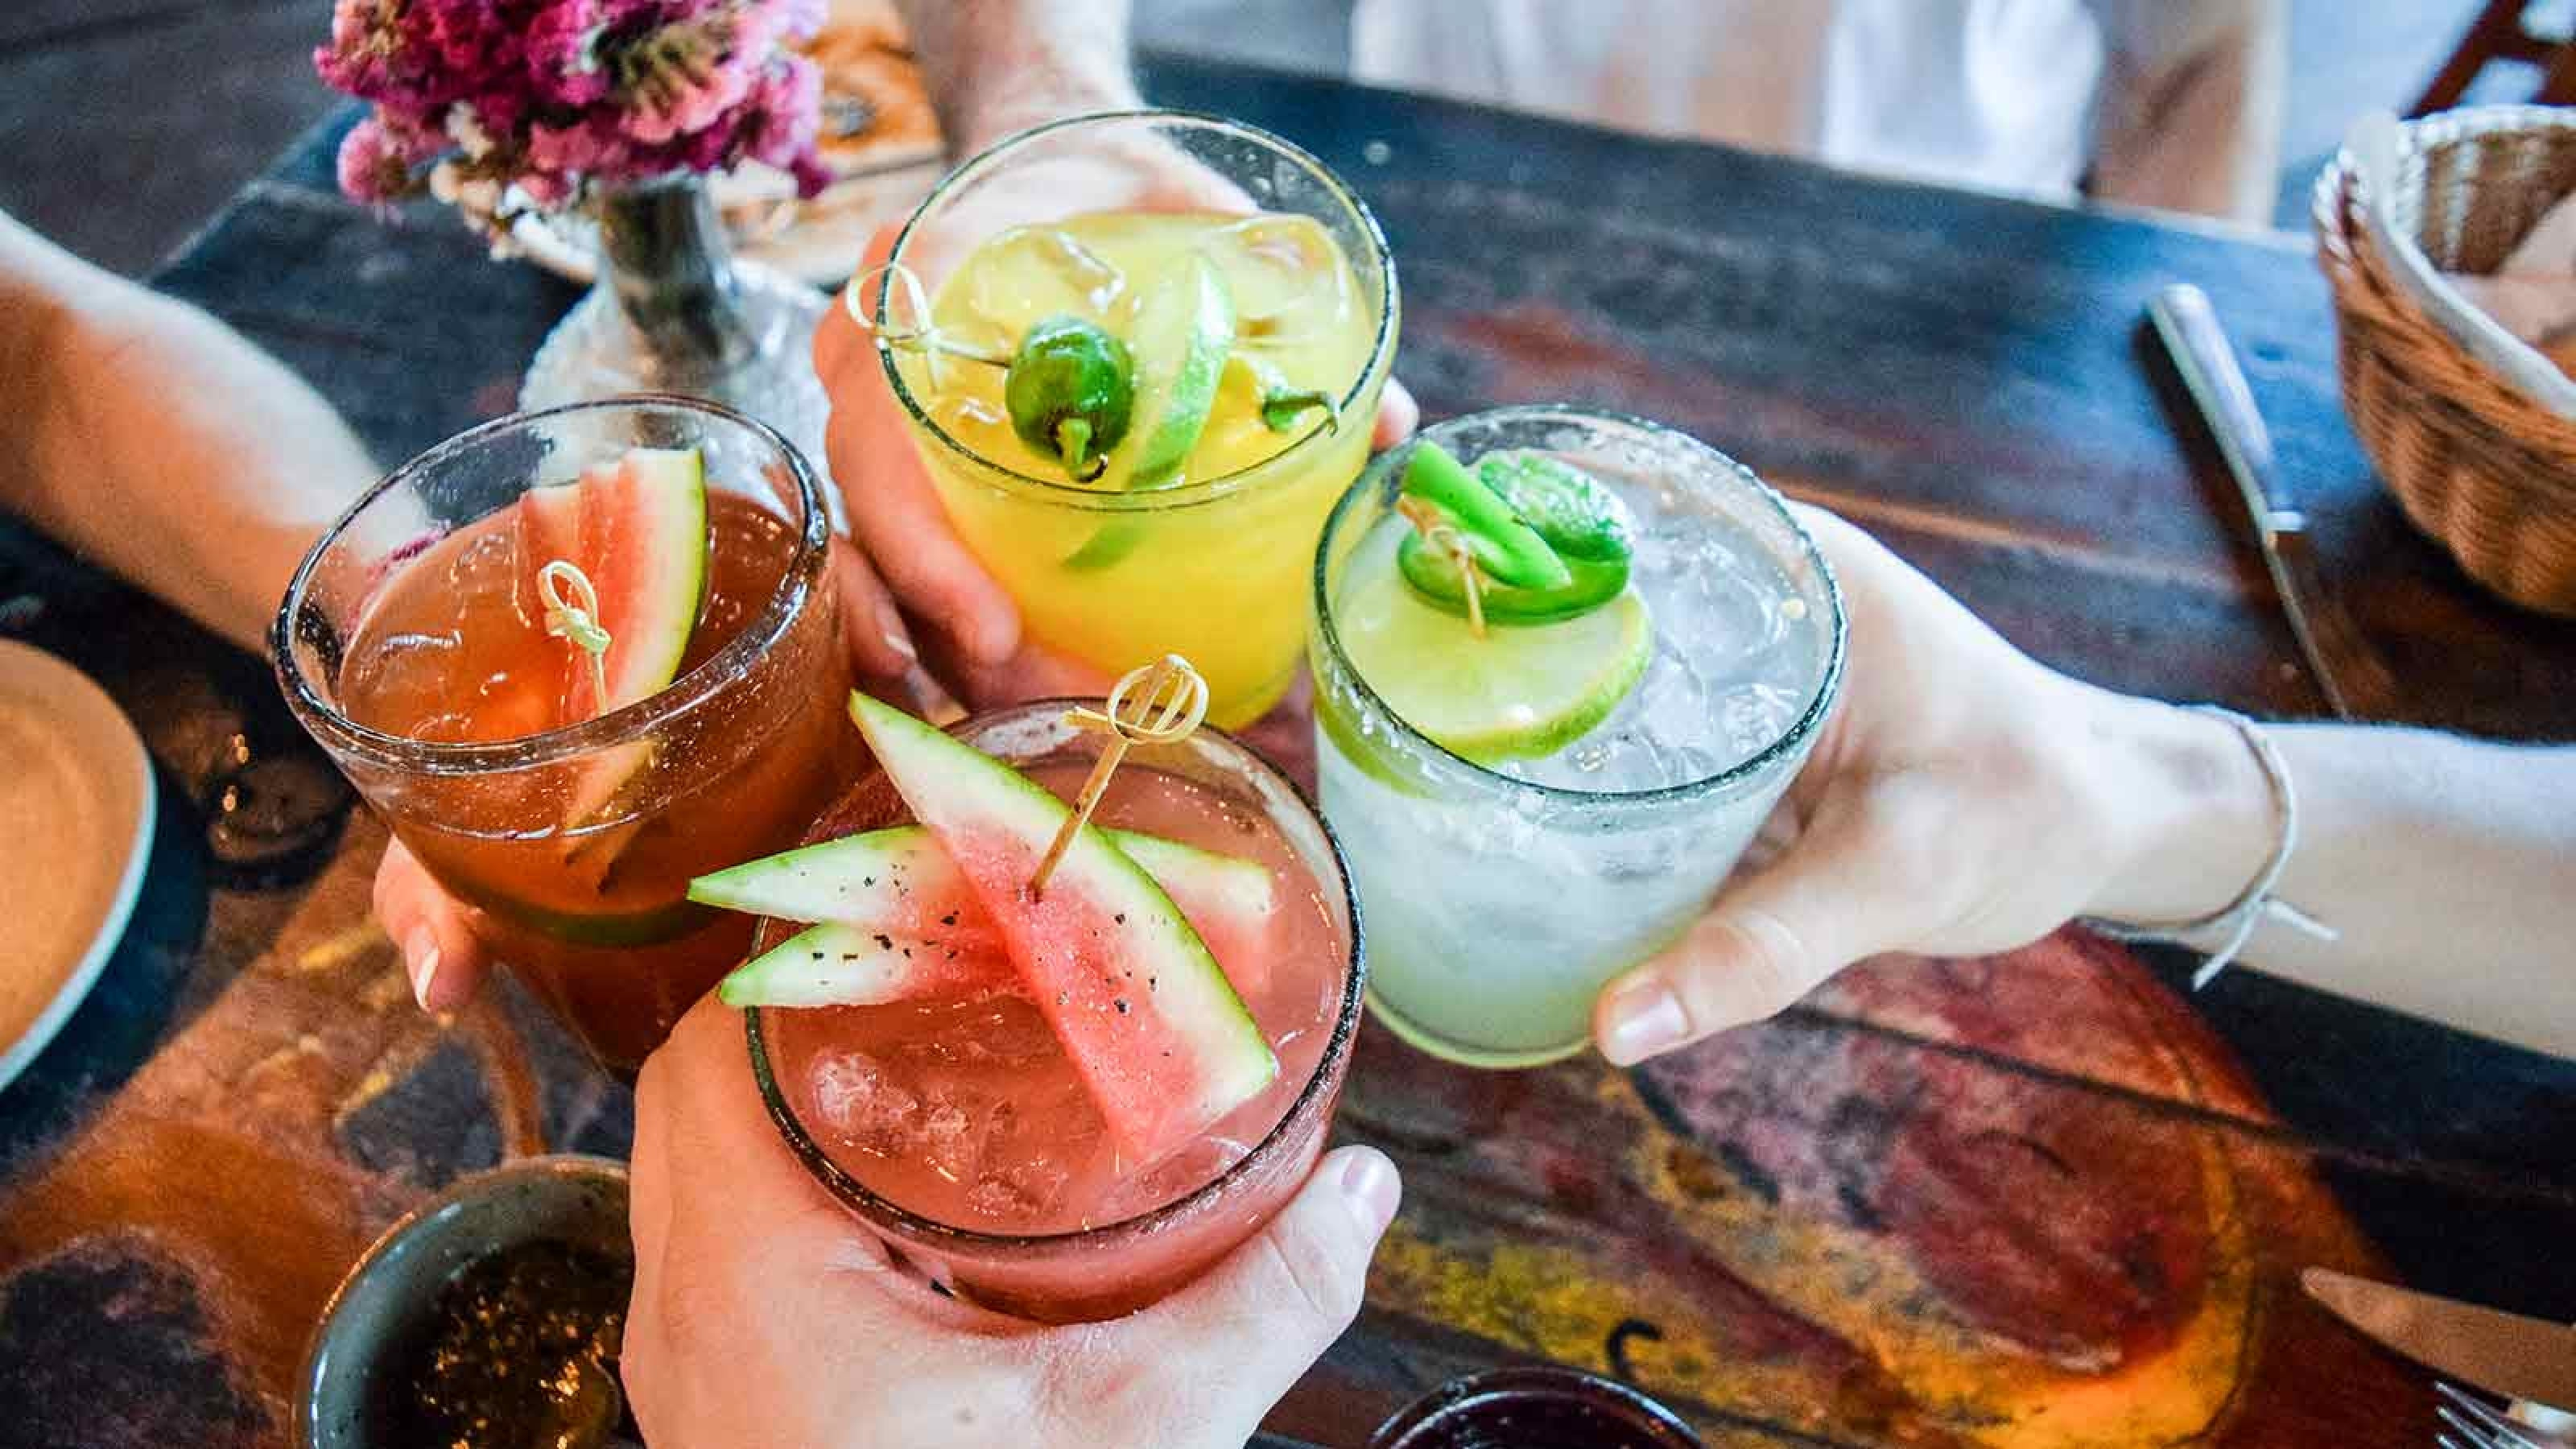 7 Awesome Cocktail Recipes to Mix Up This Summer